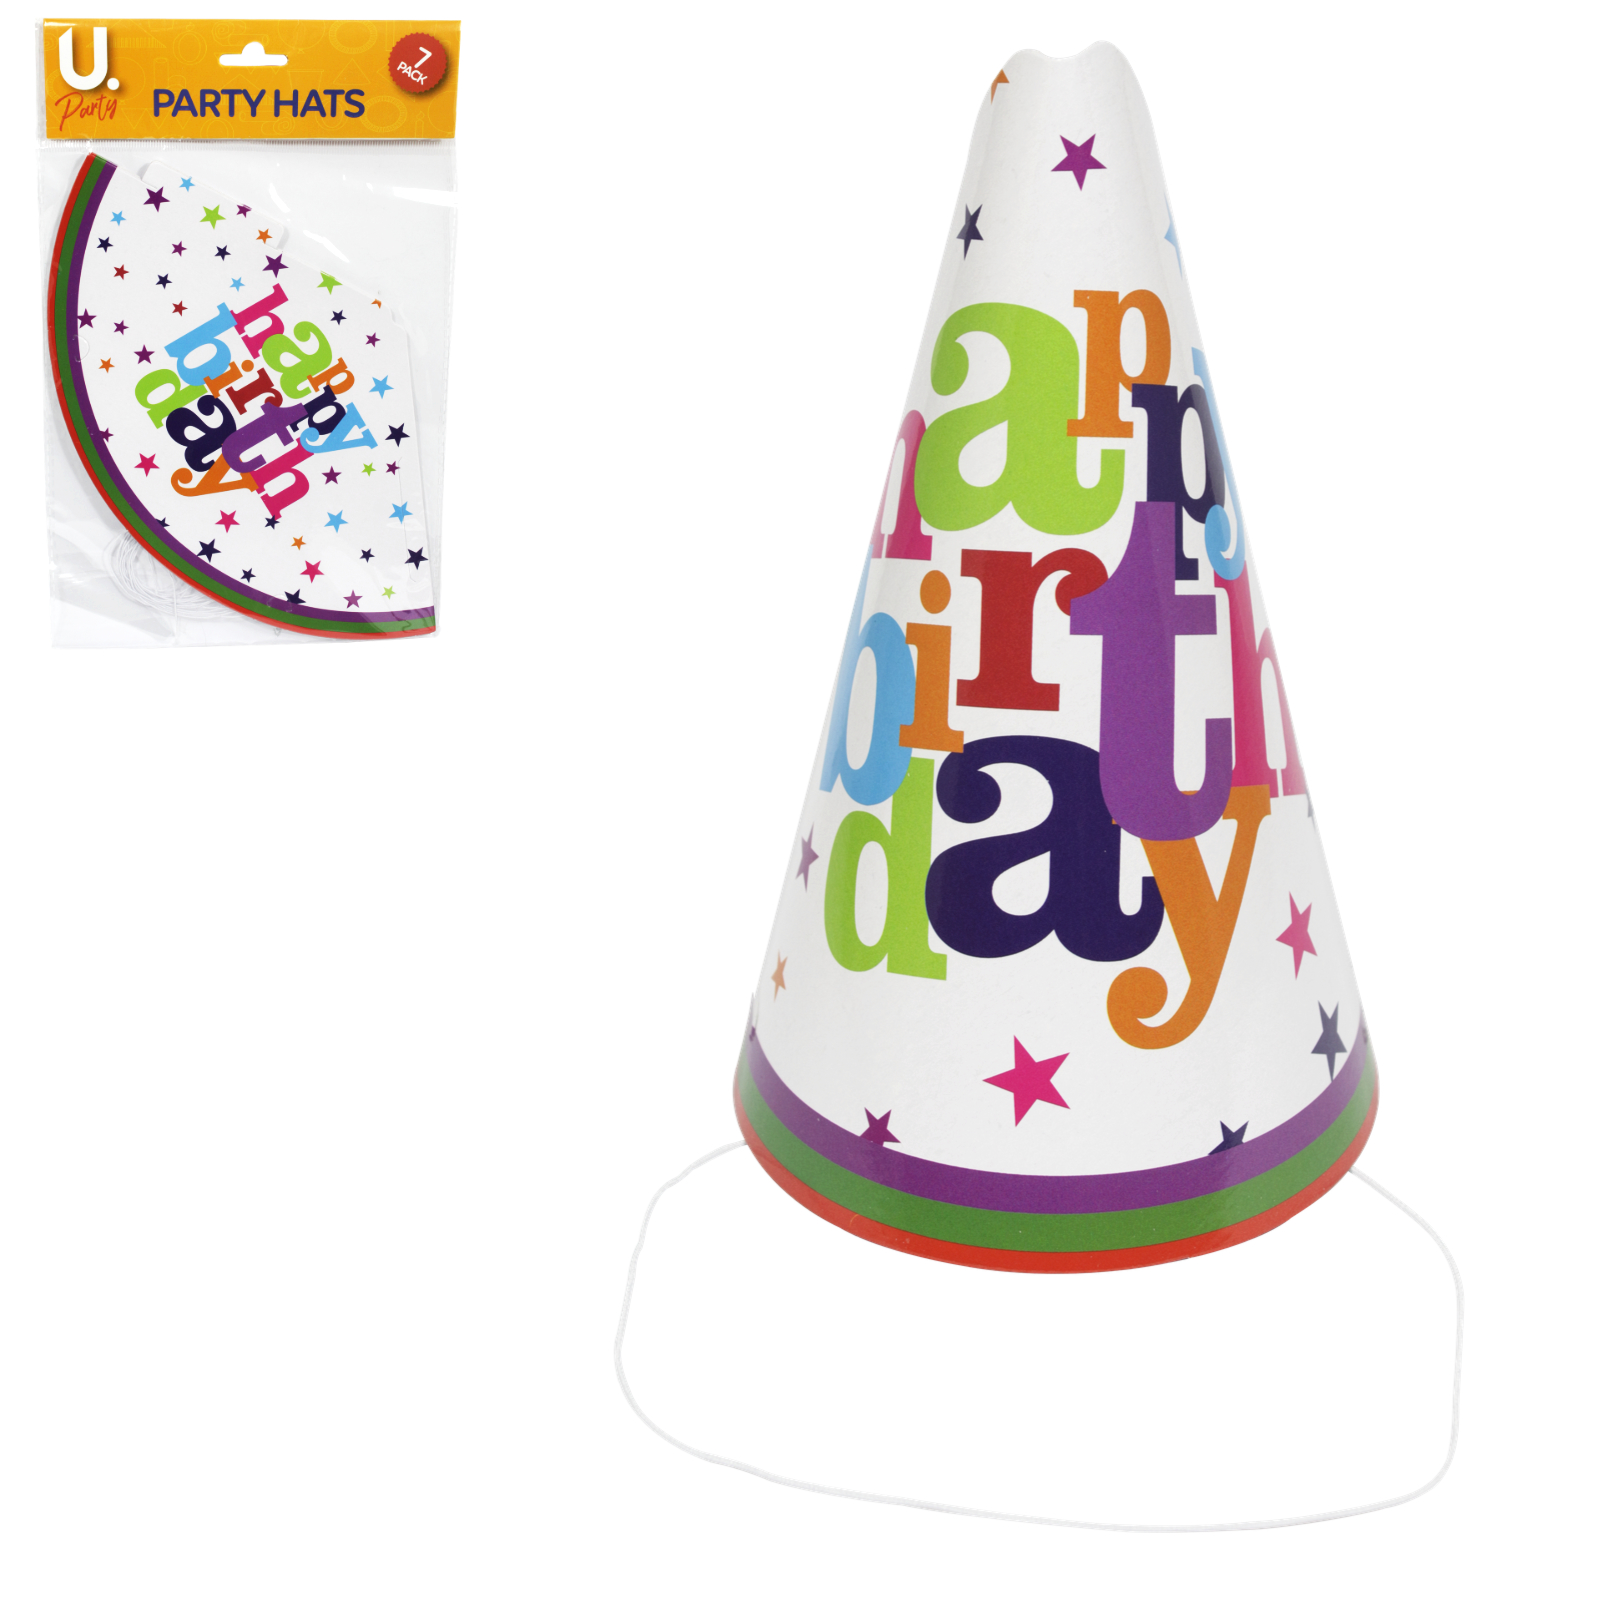 HAPPY BIRTHDAY PARTY HATS 8PK